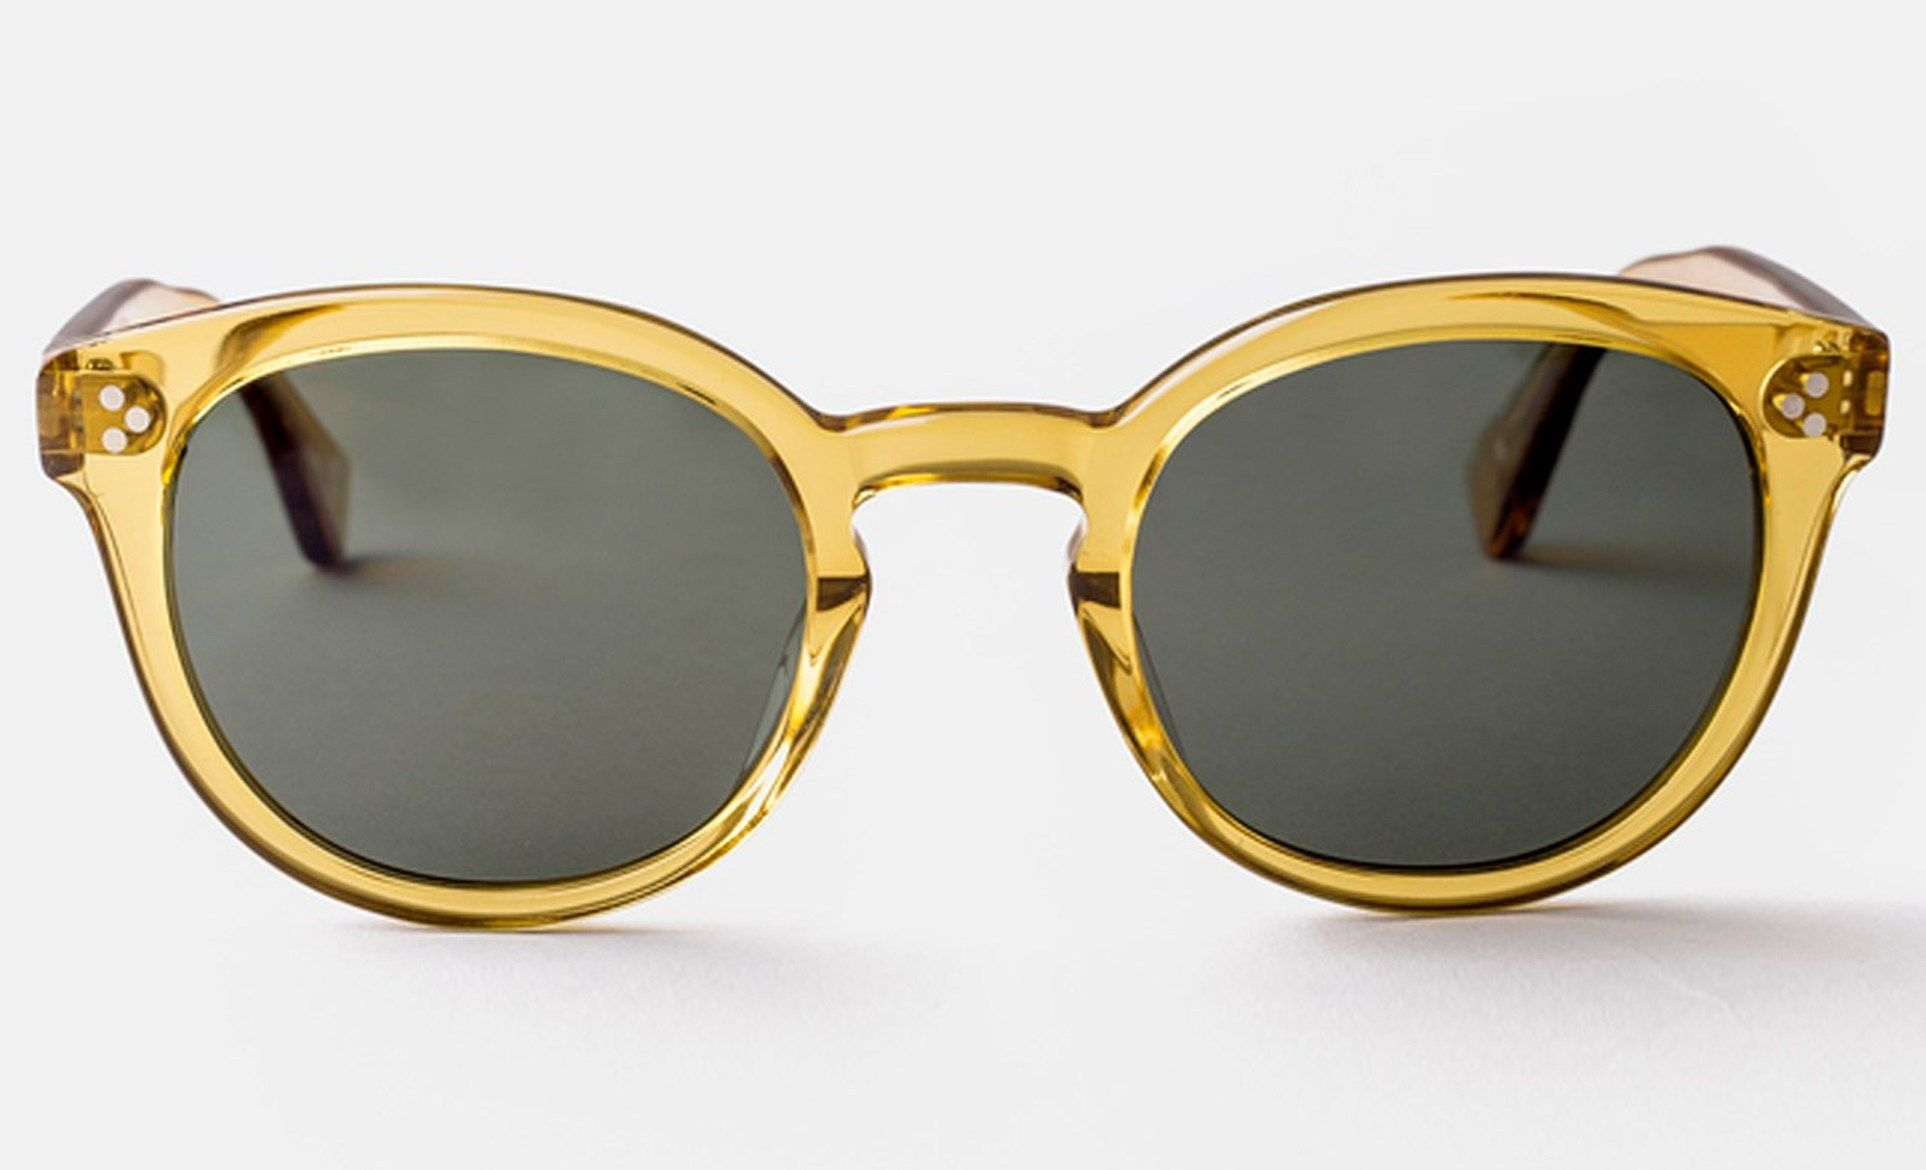 Best sunglasses for 2020 the shades you need this year